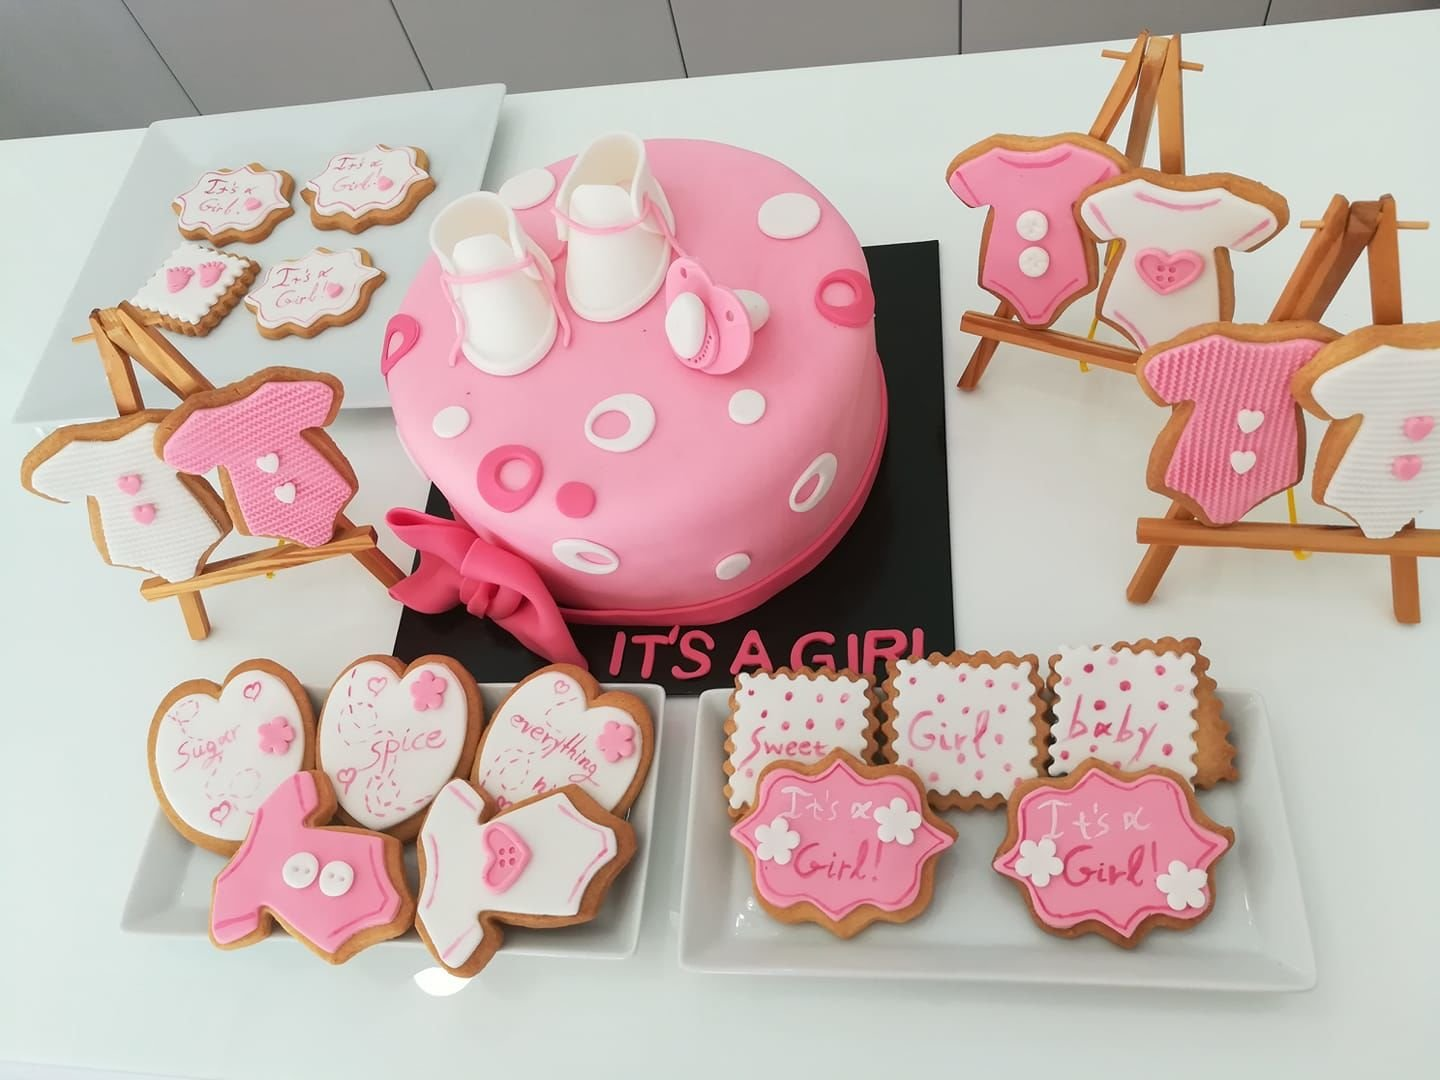 baby shower party it's a girl με τούρτα και cookies από ζαχαρόπαστα κορίτσι, ζαχαροπλαστείο καλαμάτα madamecharlotte.gr, birthday theme party cakes 2d 3d confectionery patisserie kalamata